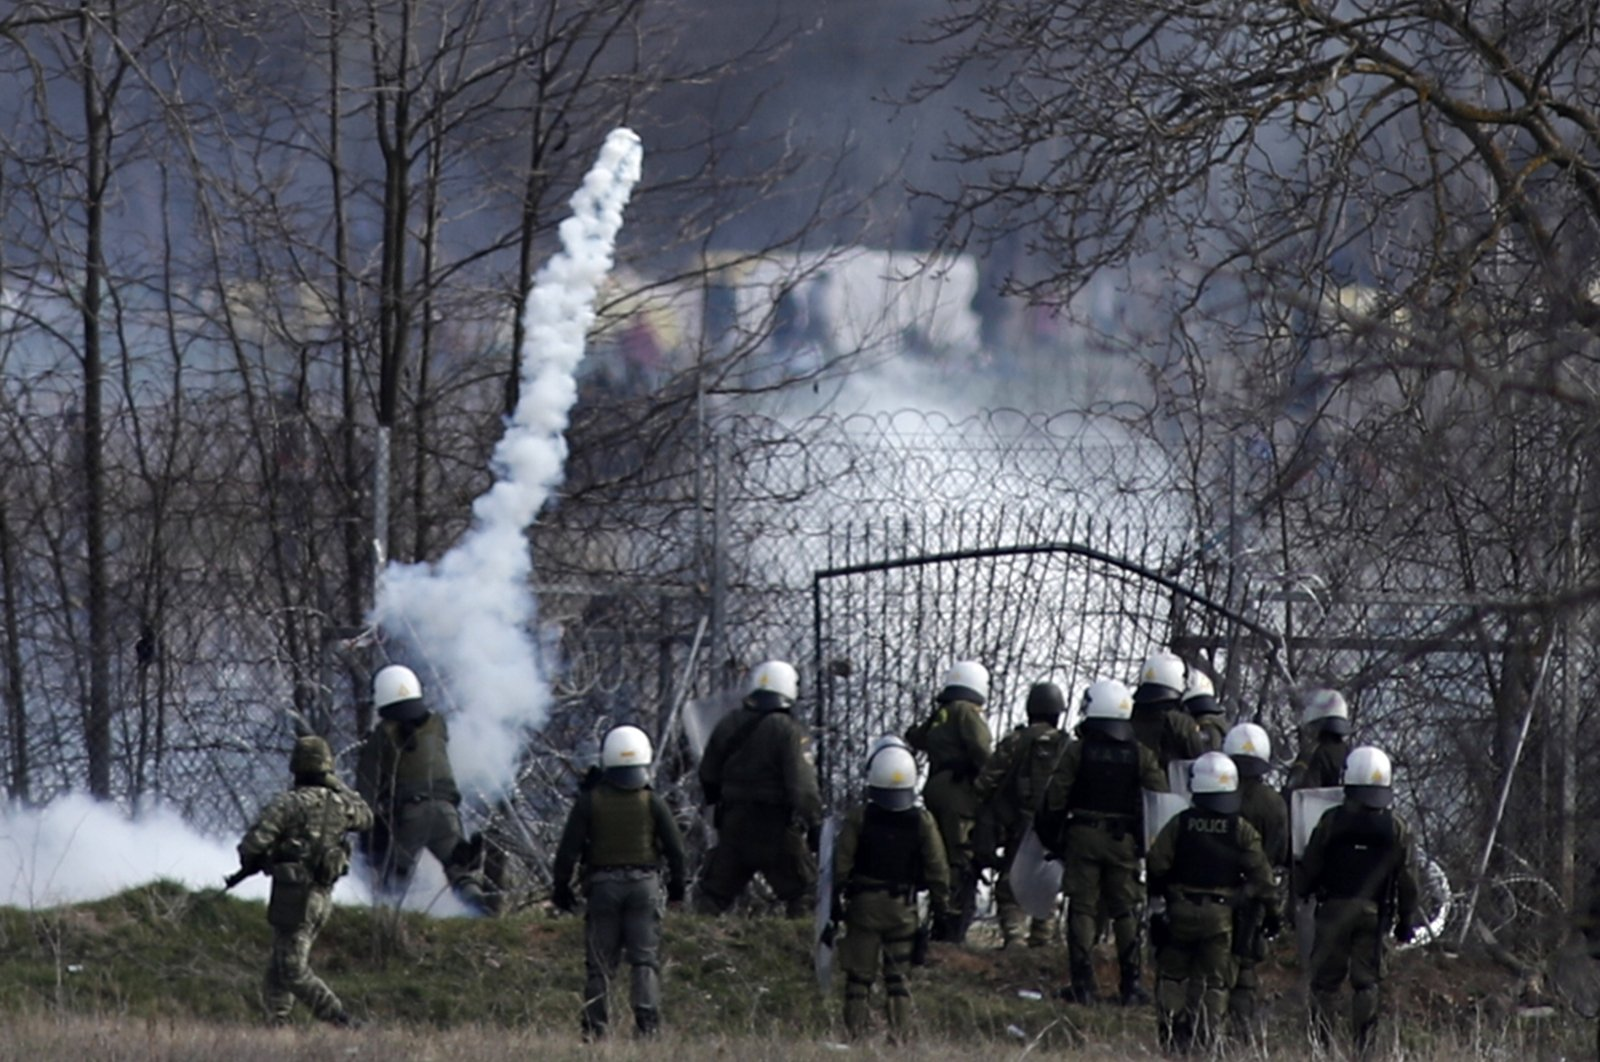 Greek police guard as migrants gather at a border fence on the Turkish side, during clashes at the Greek-Turkish border in Kastanies, Evros region on March 7. Thousands of refugees and other migrants have been trying to get into EU member Greece in the past week after Turkey declared that its previously guarded borders with Europe were open. (AP Photo)